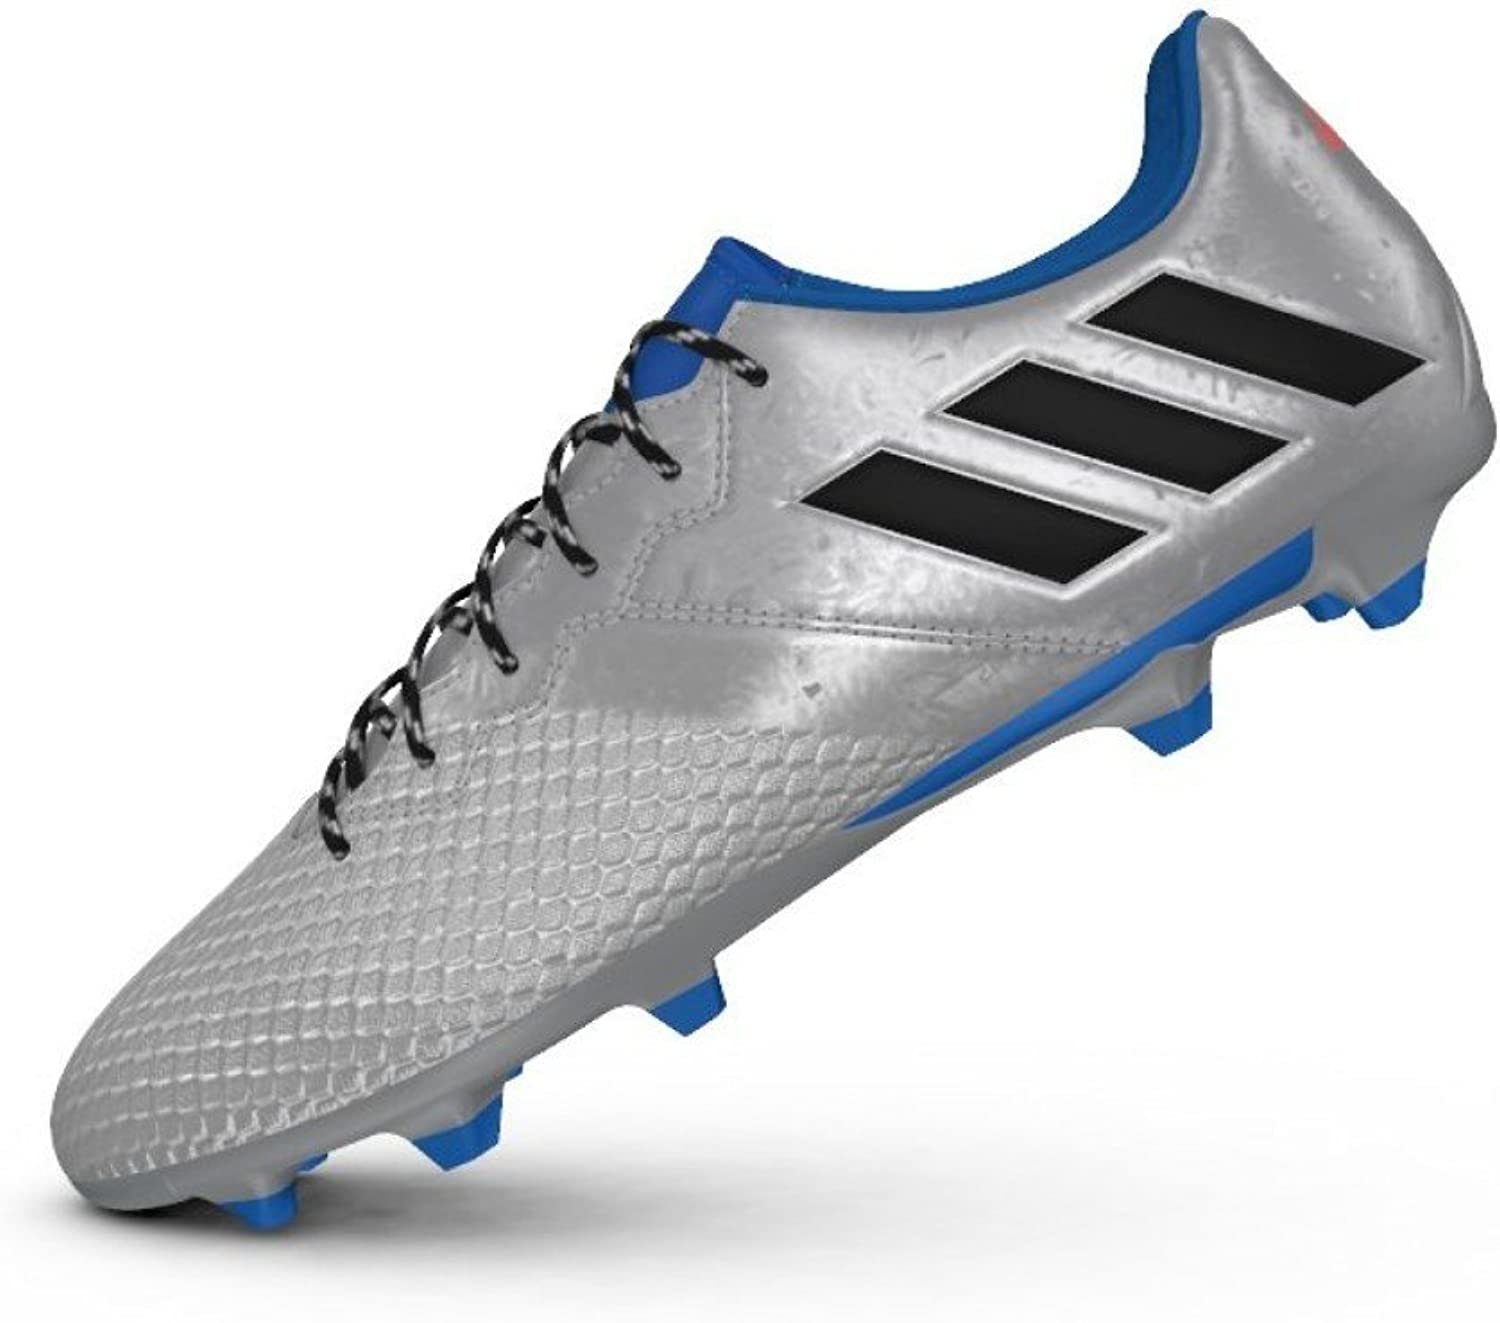 Adidas Men's Messi 16.3 Fg Football Boots